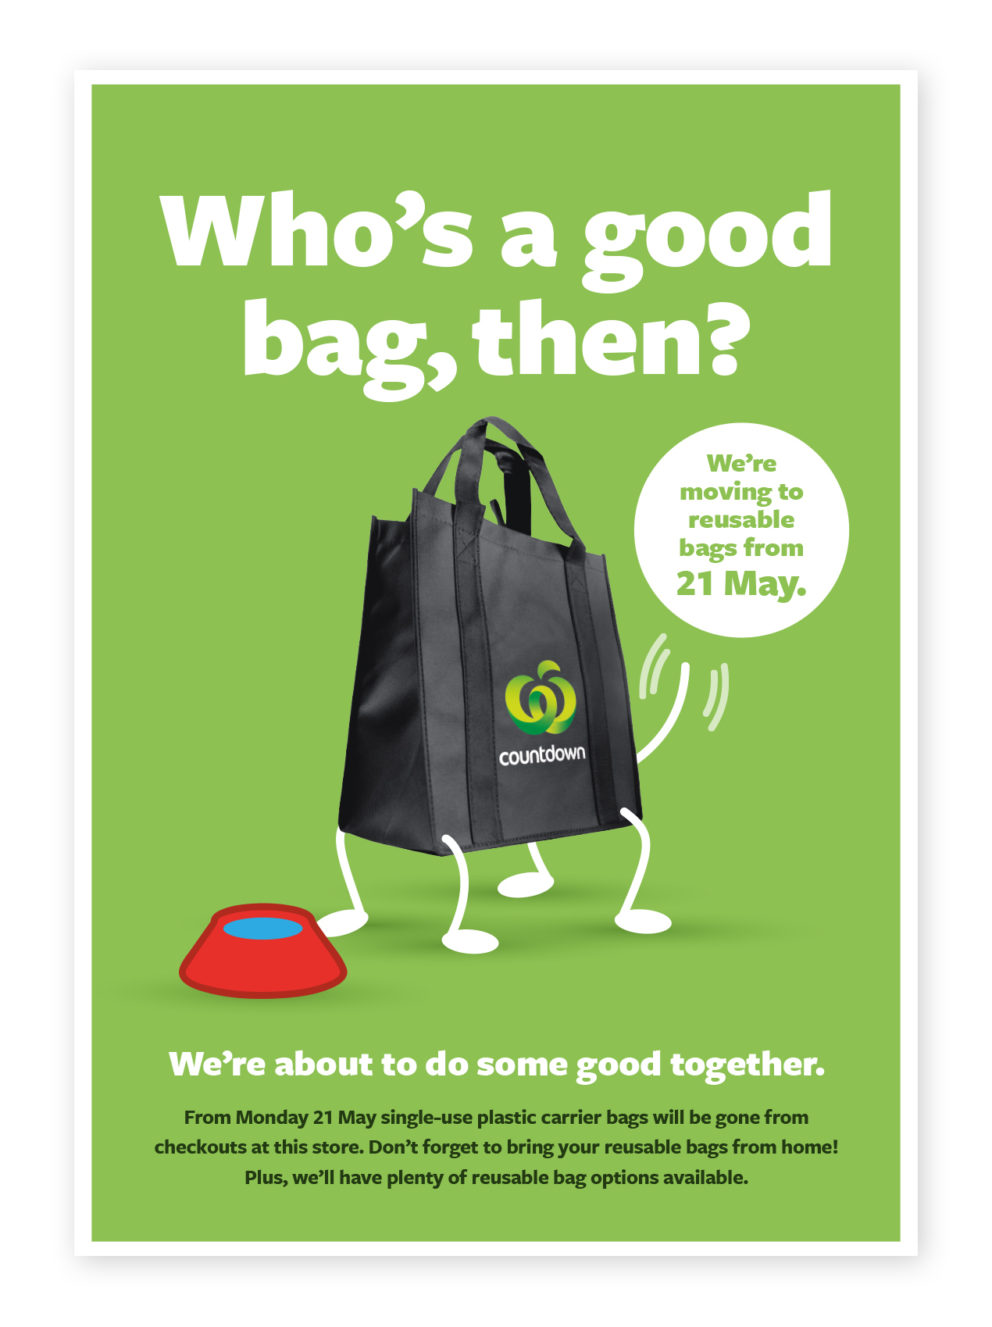 Who's a good bag then - Bag for good TM